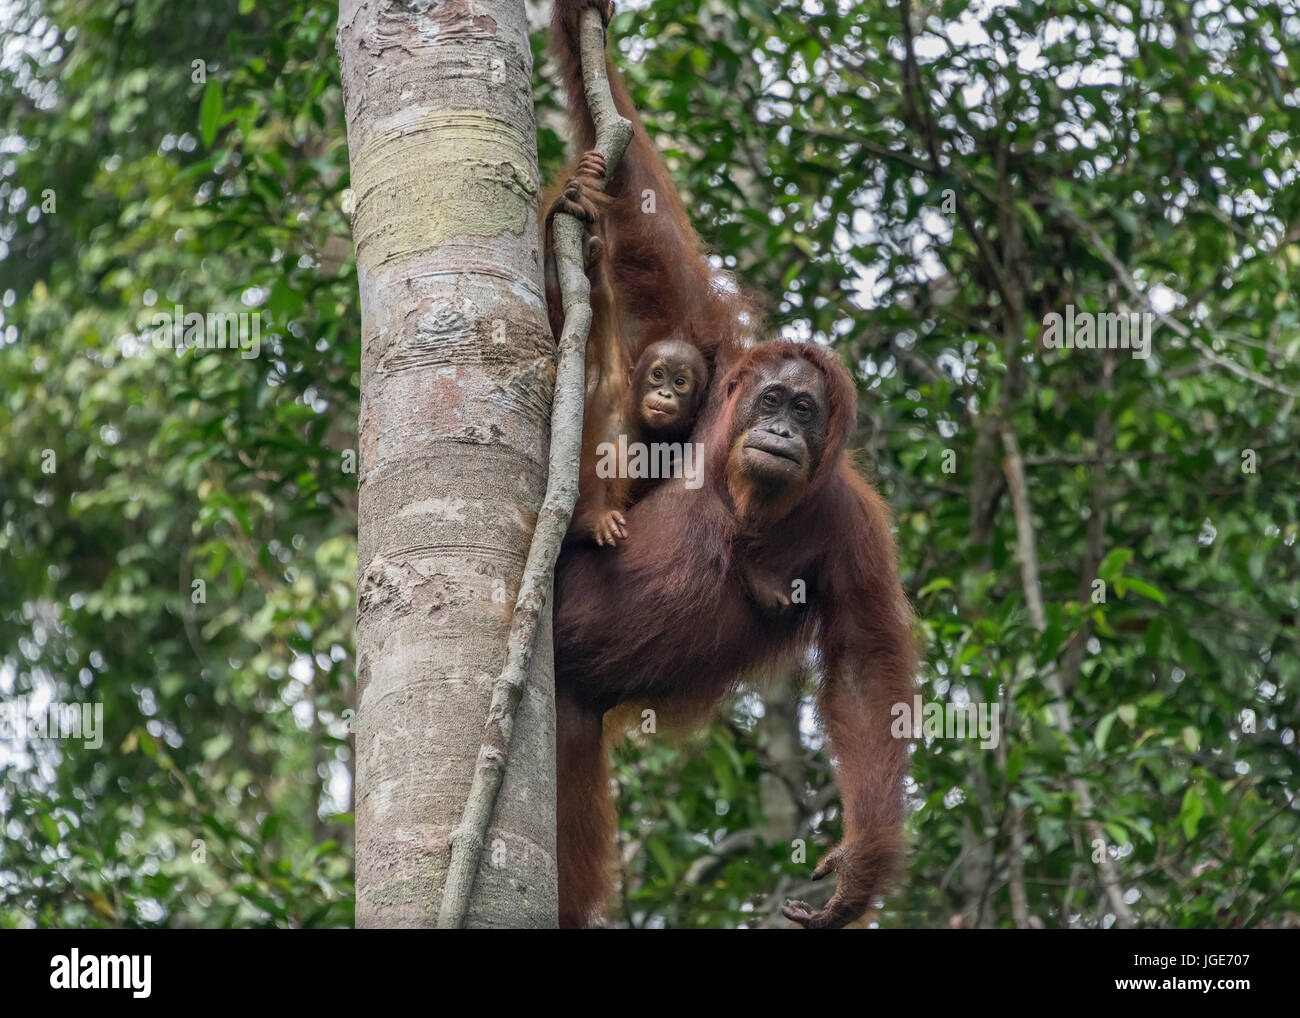 Mutter orangutan und Look-alike Baby hoch in einem Baum, Tanjung Puting Nationalpark, Kalimantan, Indonesien Stockbild